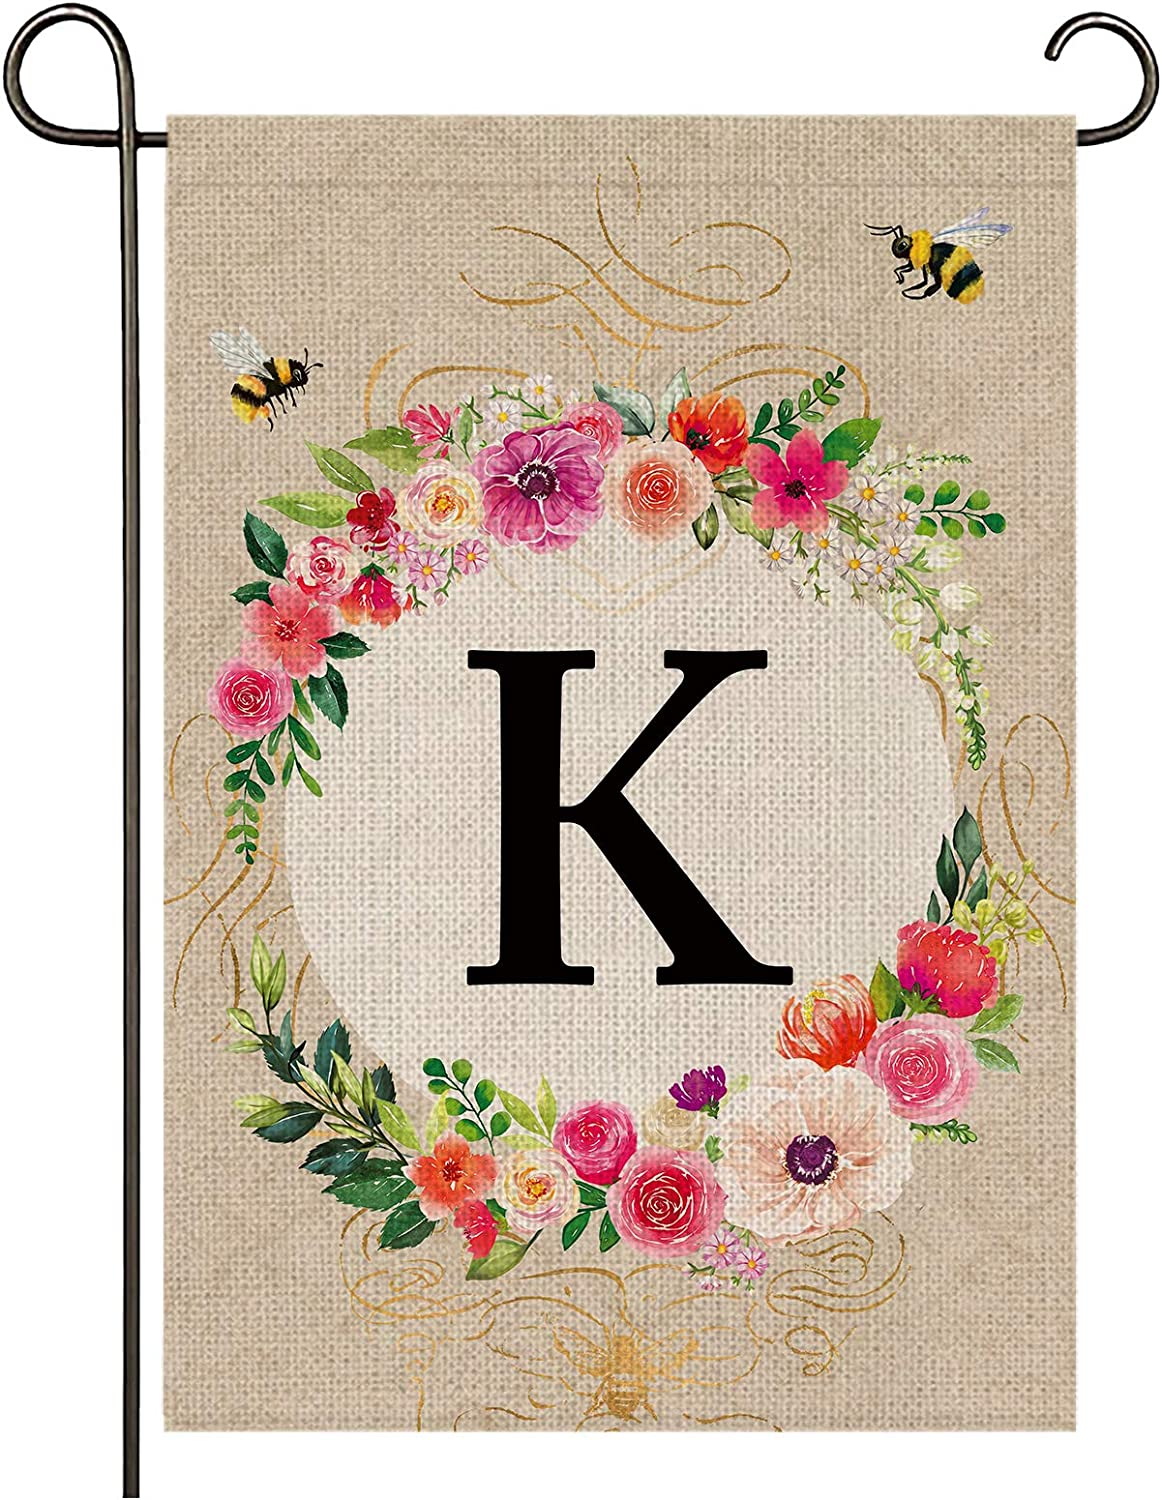 Monogram Garden Flag Letter K Garden Flag,12.5X18inches Initial Garden Flag Family Name Last Name Welcome Garden Flag, Premium Burlap Weather and UV Resistant for Outside Yard Outdoor Decoration